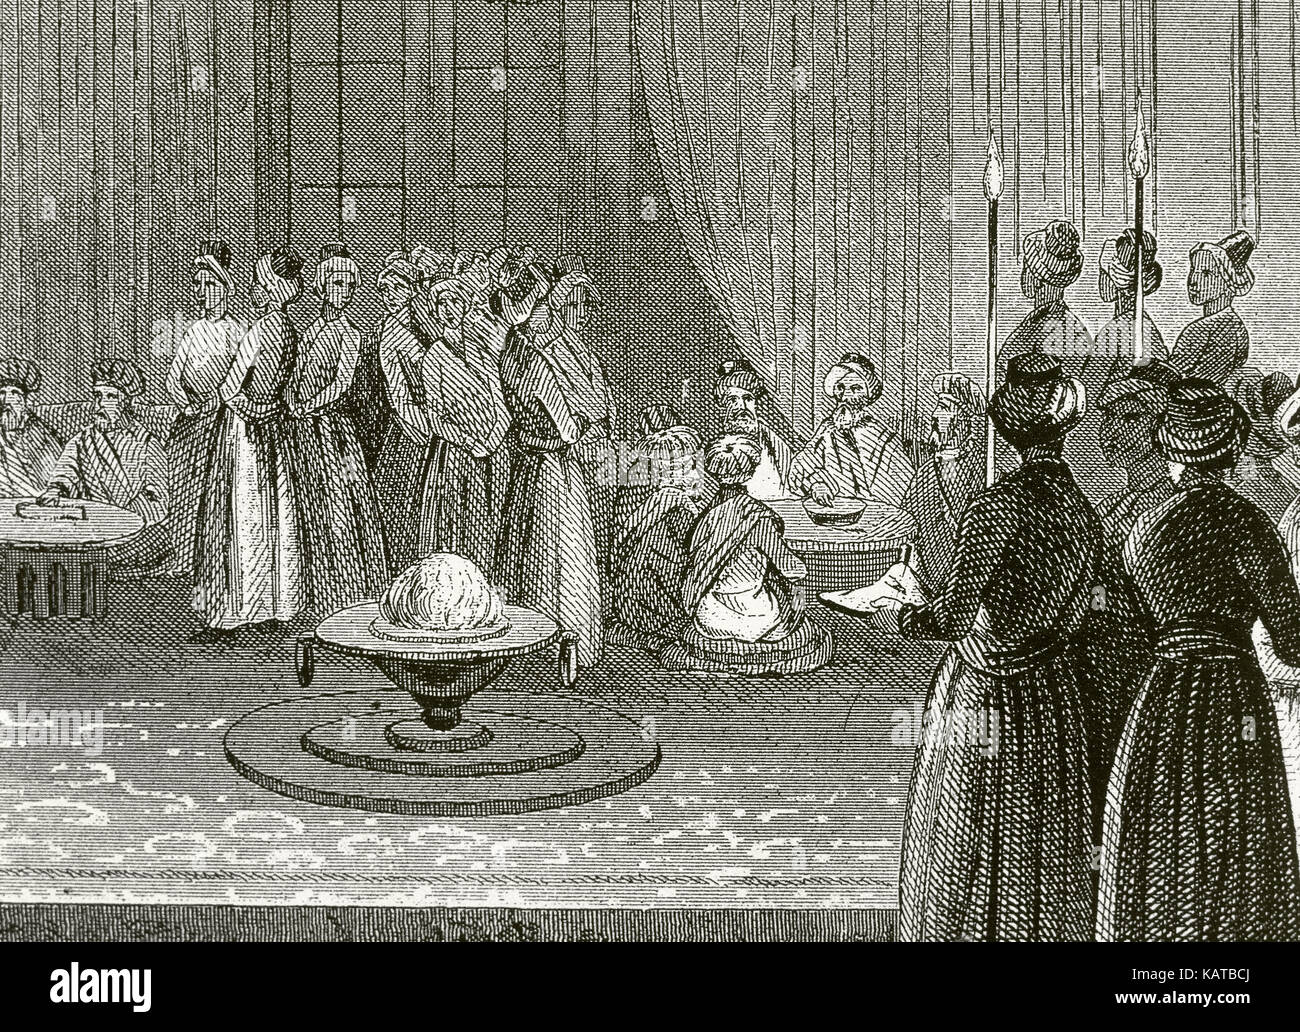 Ottoman Empire. Banquet held at the court of Topkapi Palace. Engraving. 19th century. - Stock Image